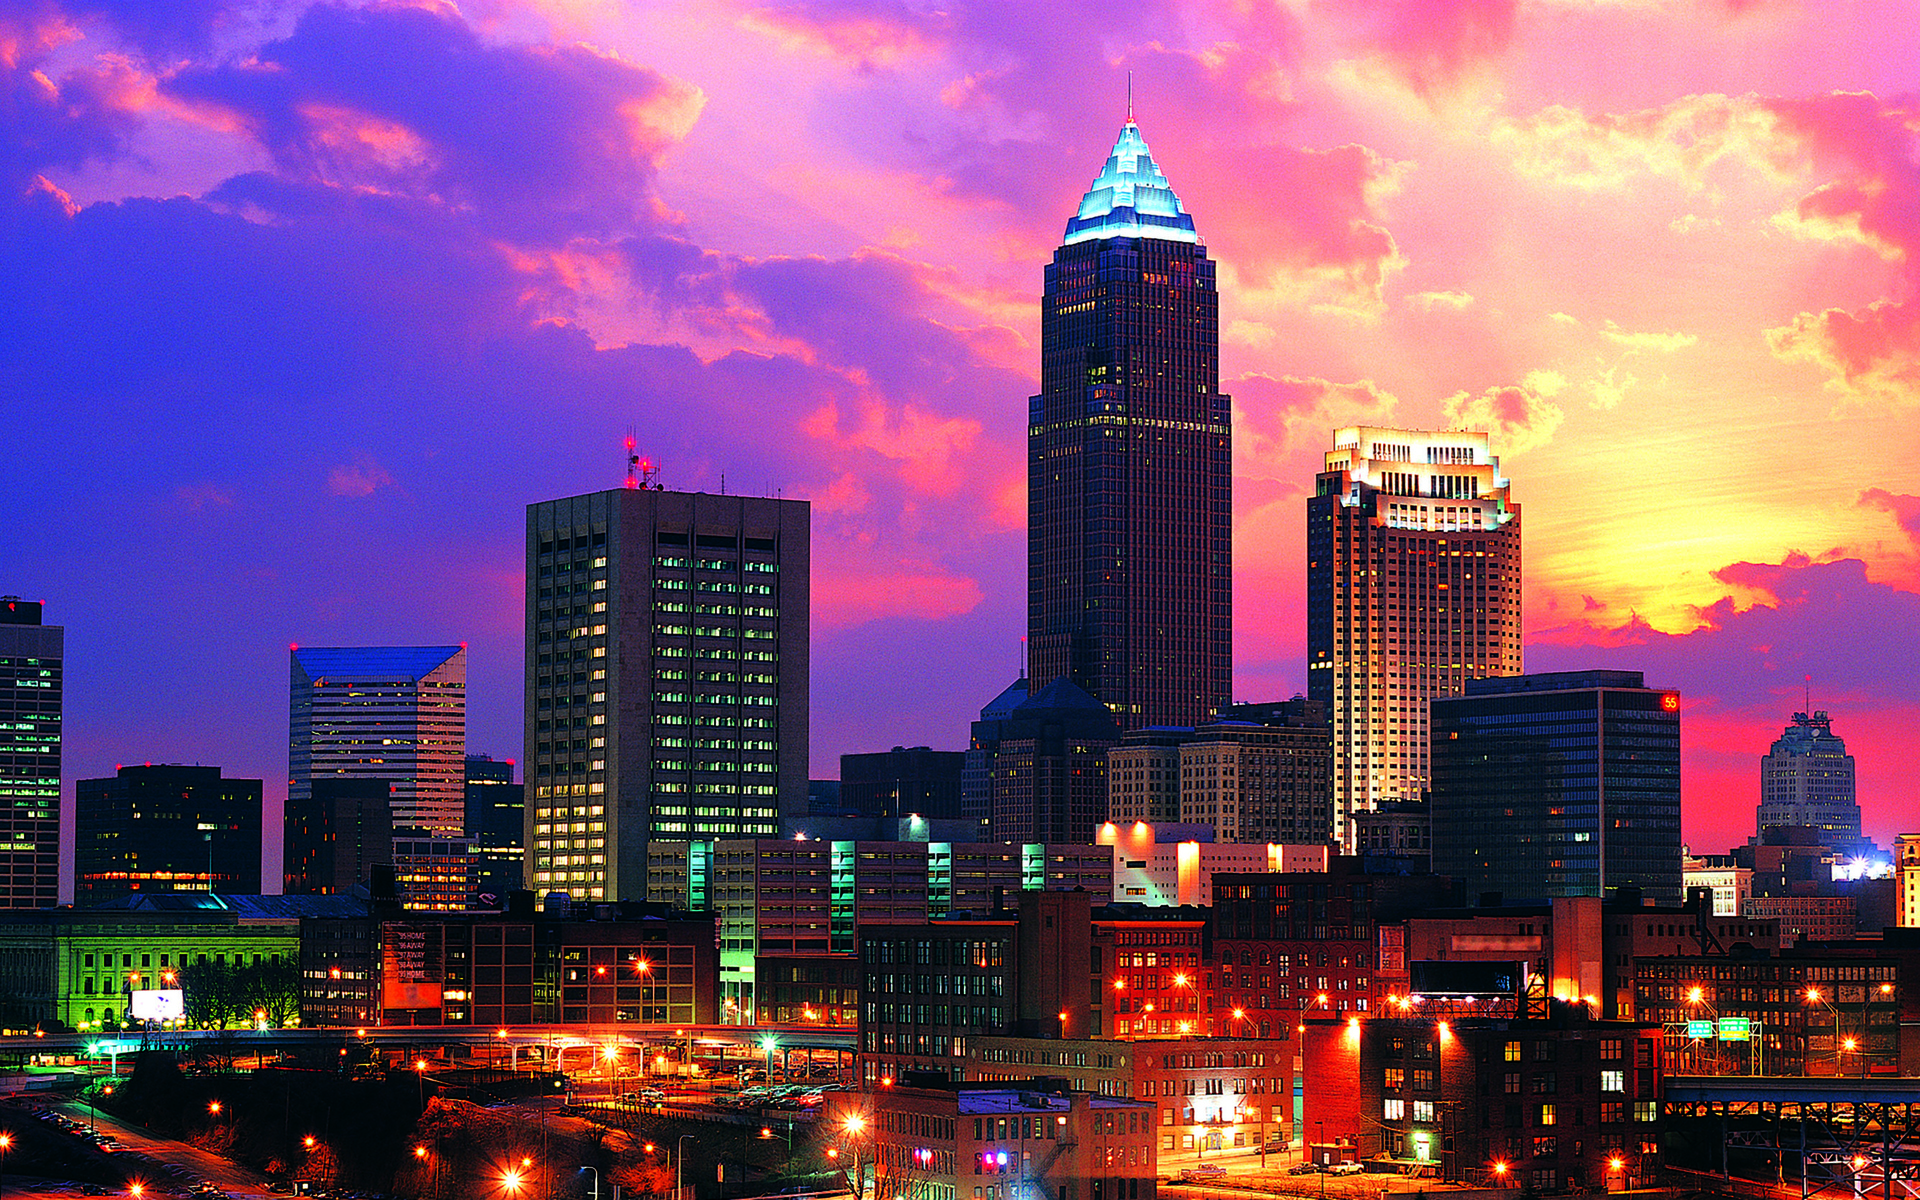 downtown cleveland ohio wallpaper - photo #11